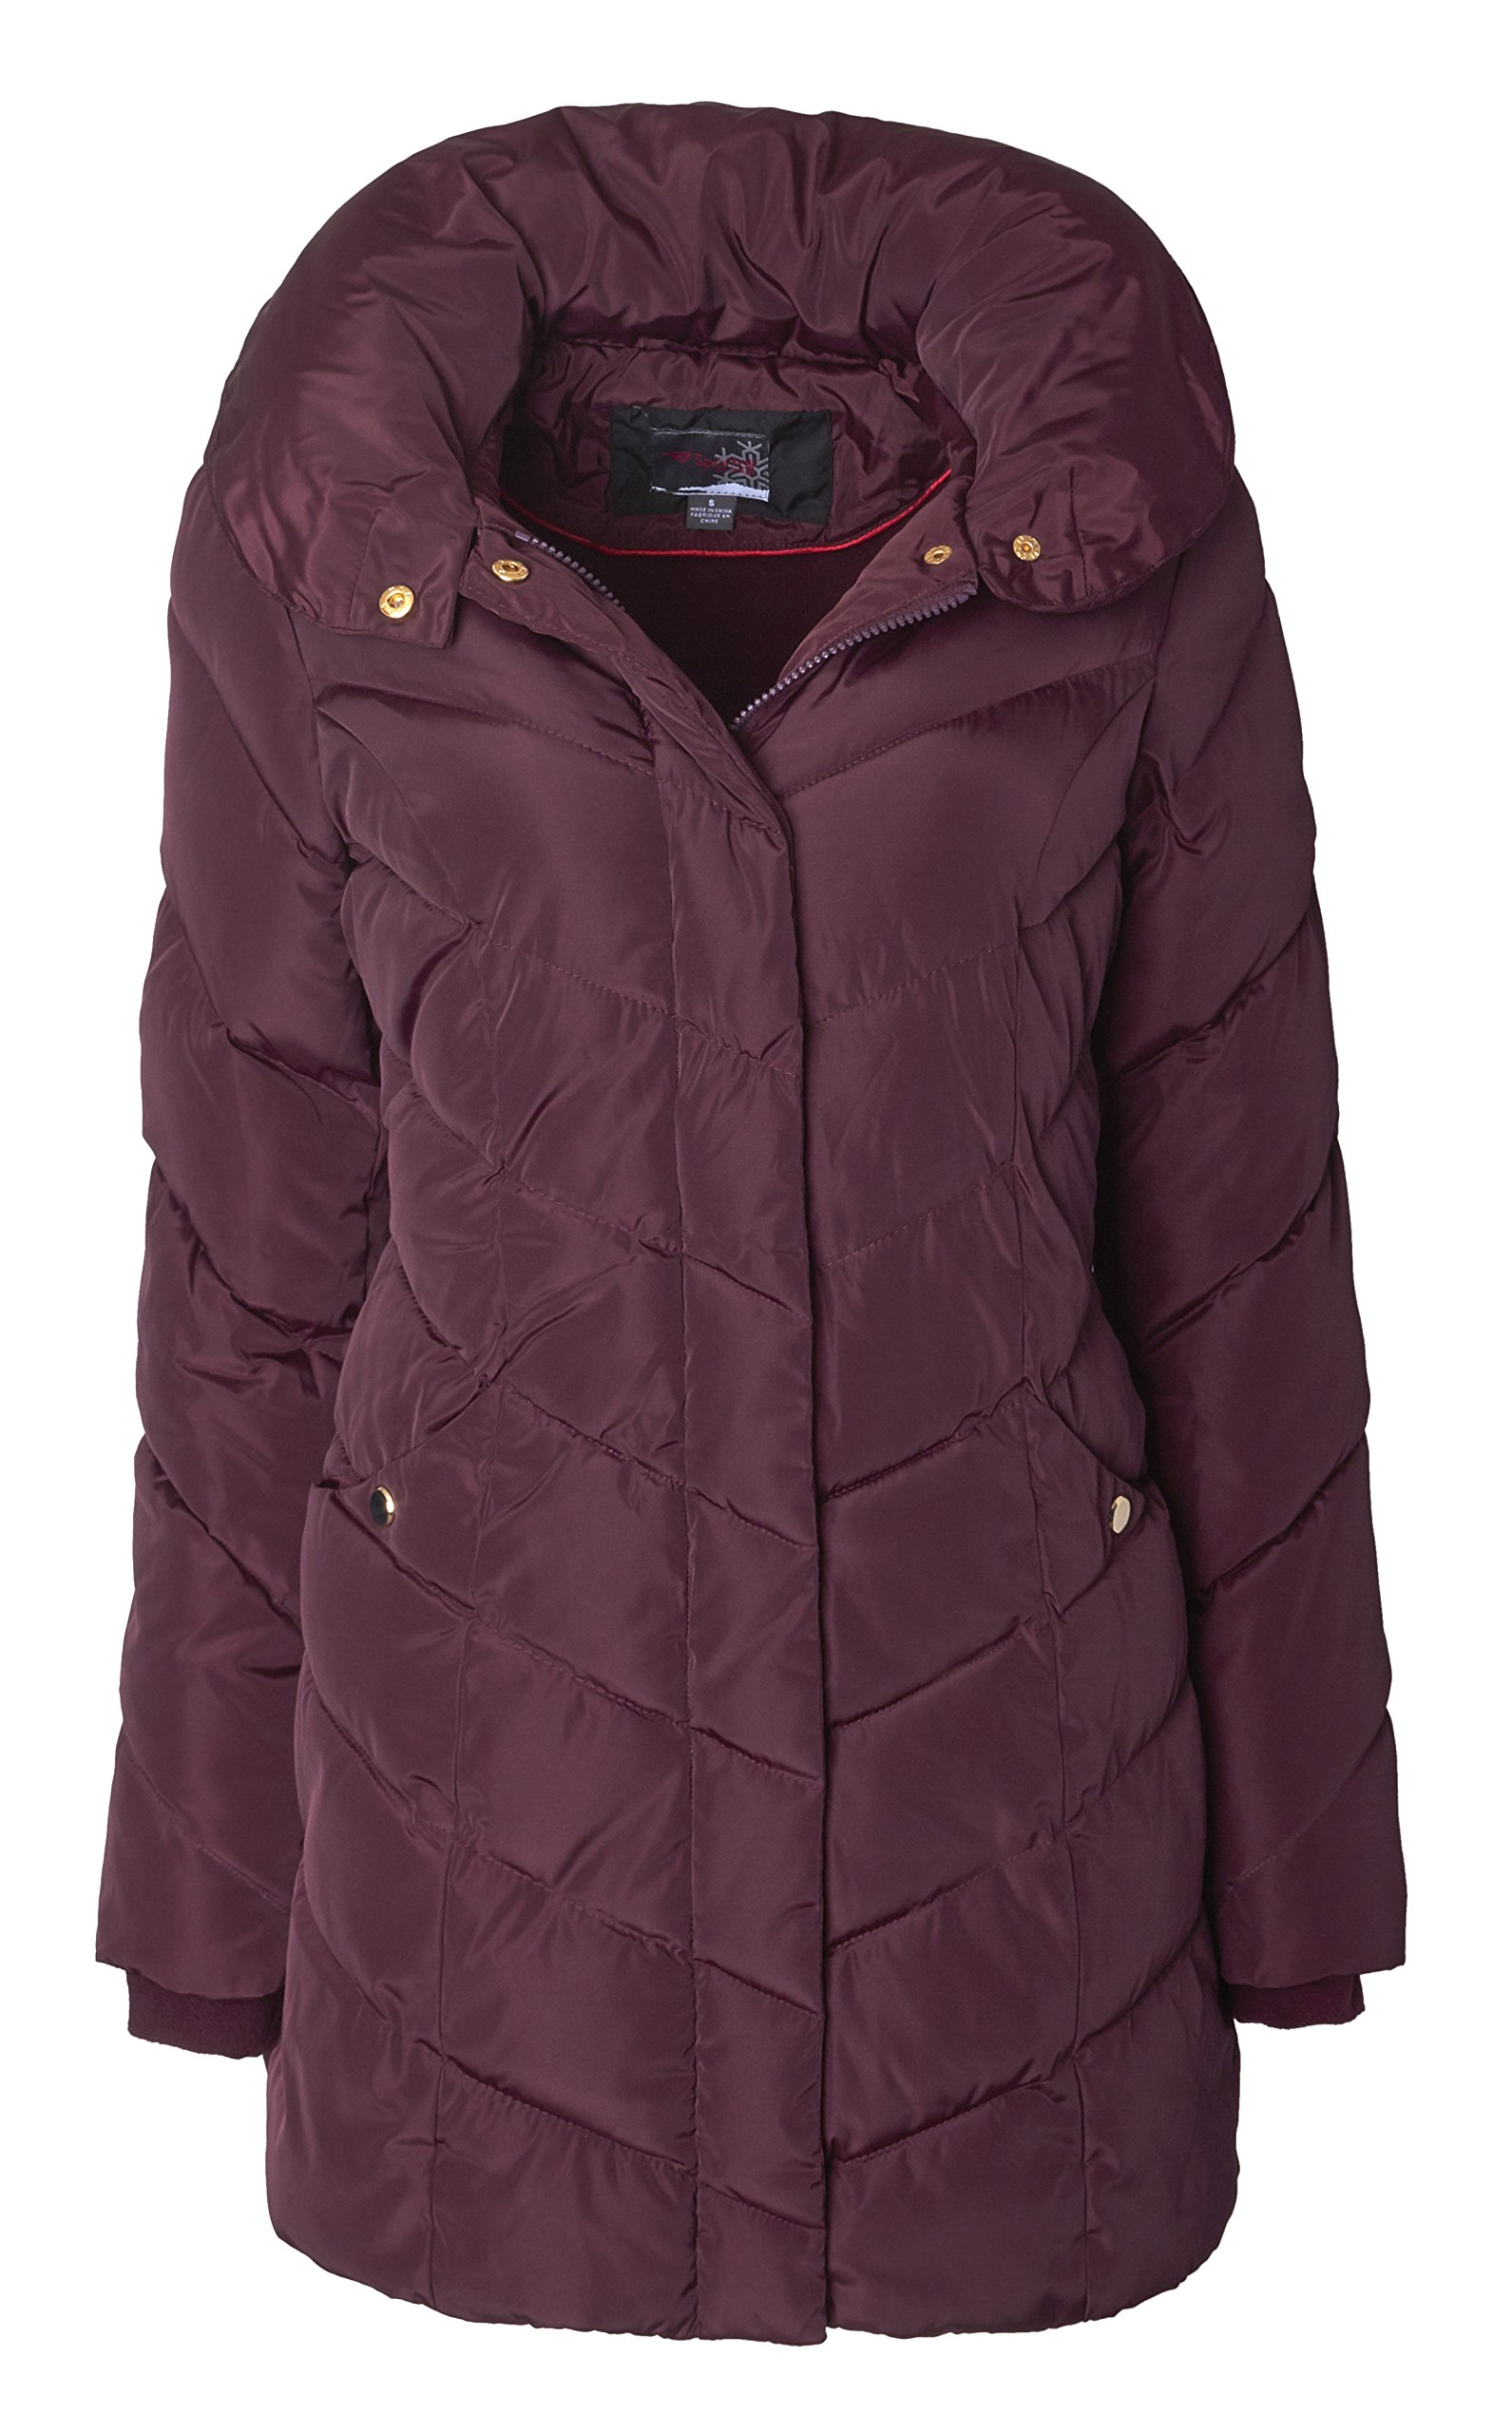 Sportoli Womens Packable Winter Chevron Quilted Fleece Lined Puffer Coat With Hood - Merlot (Size 1X)